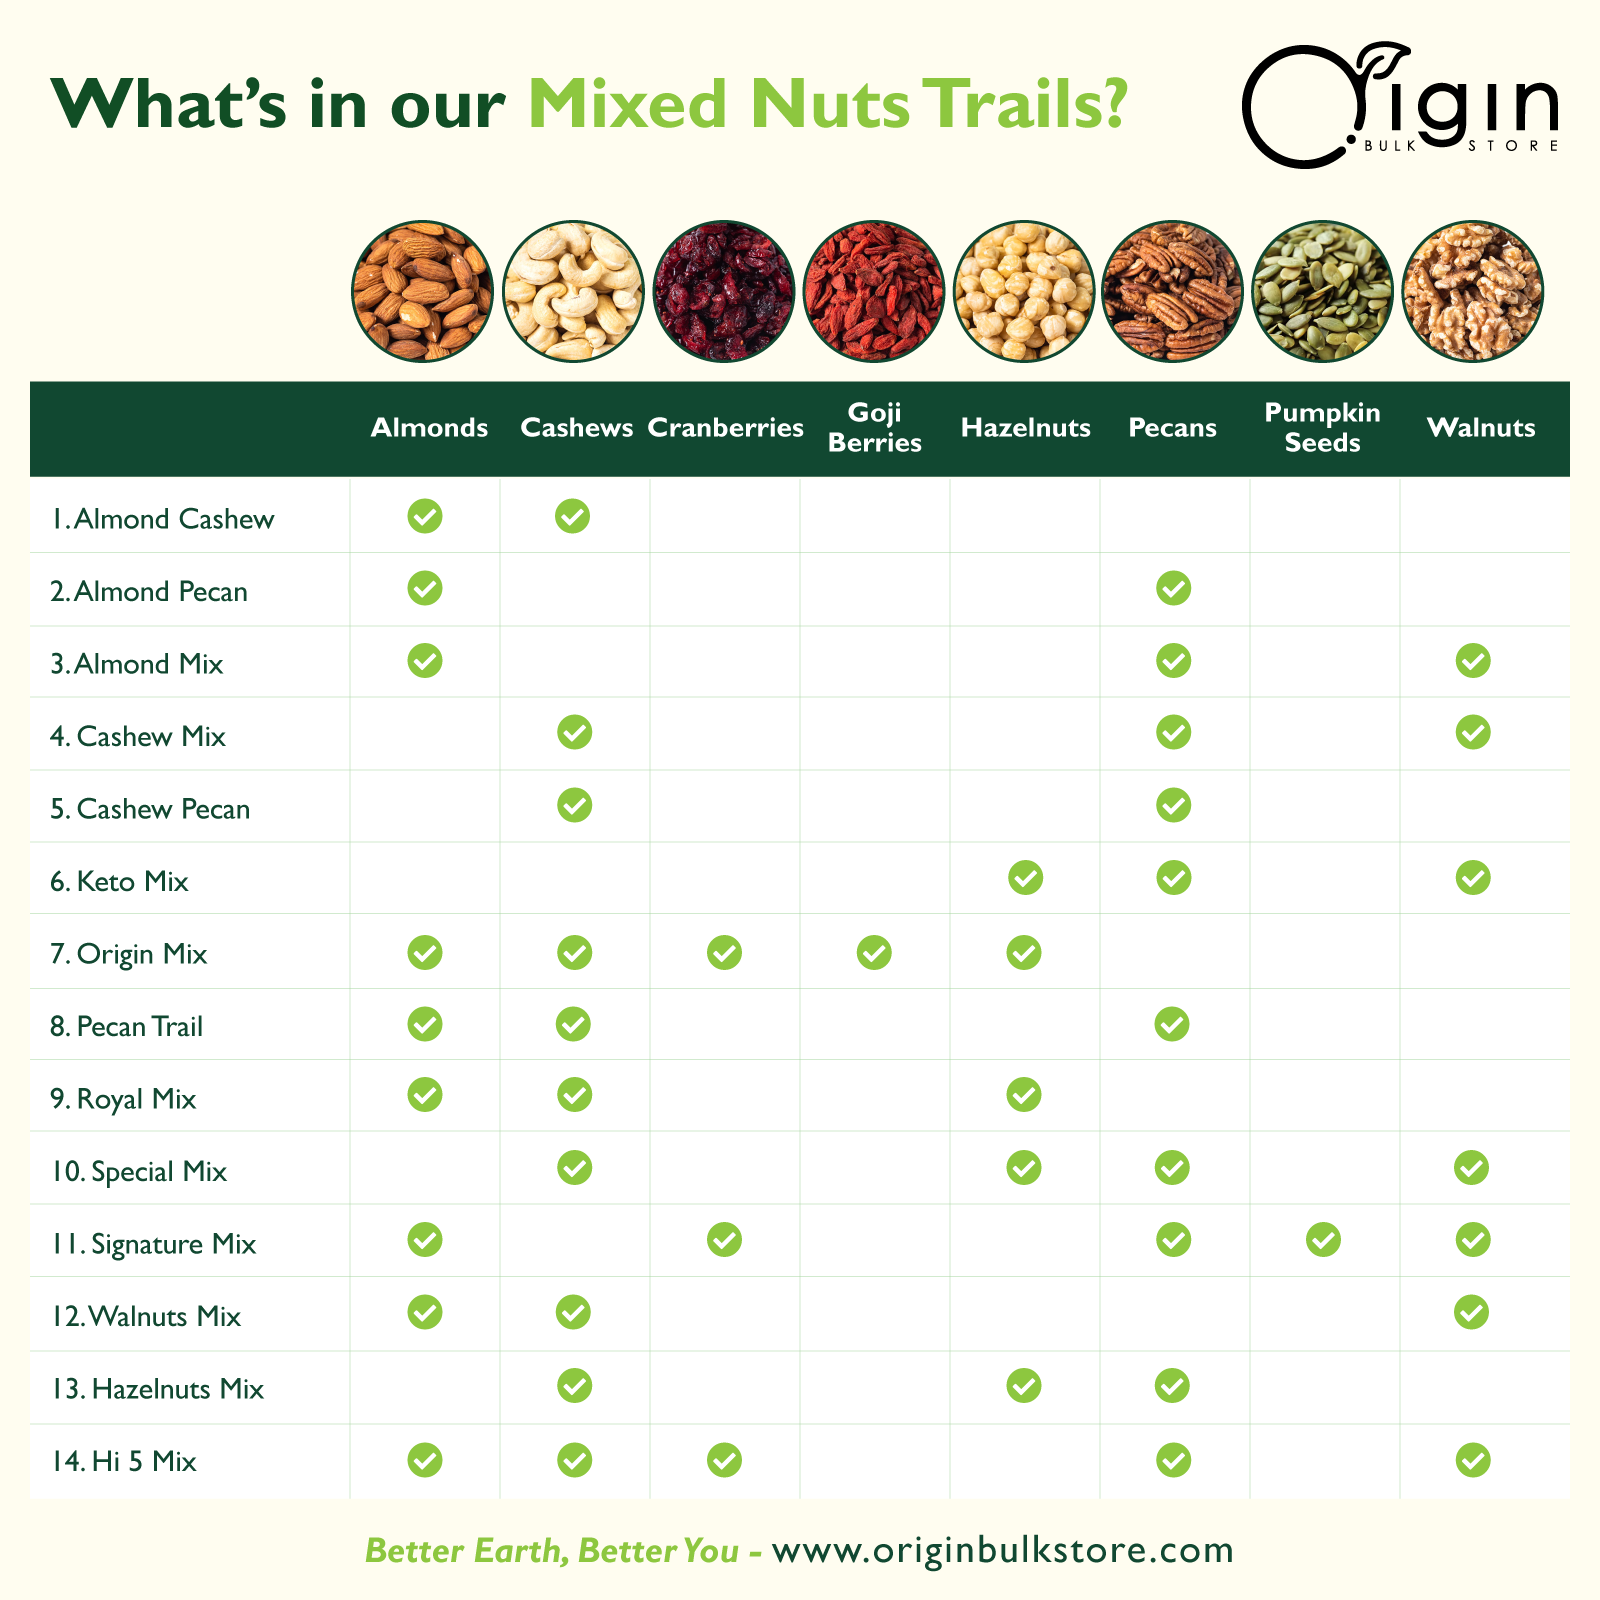 Mixed Nuts Trails Ingredients Chart